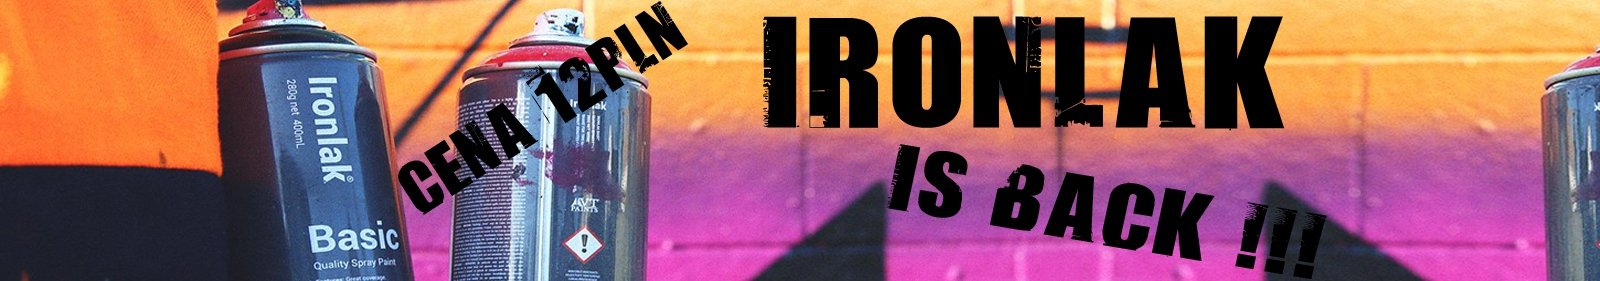 IRONLAK IS BACK